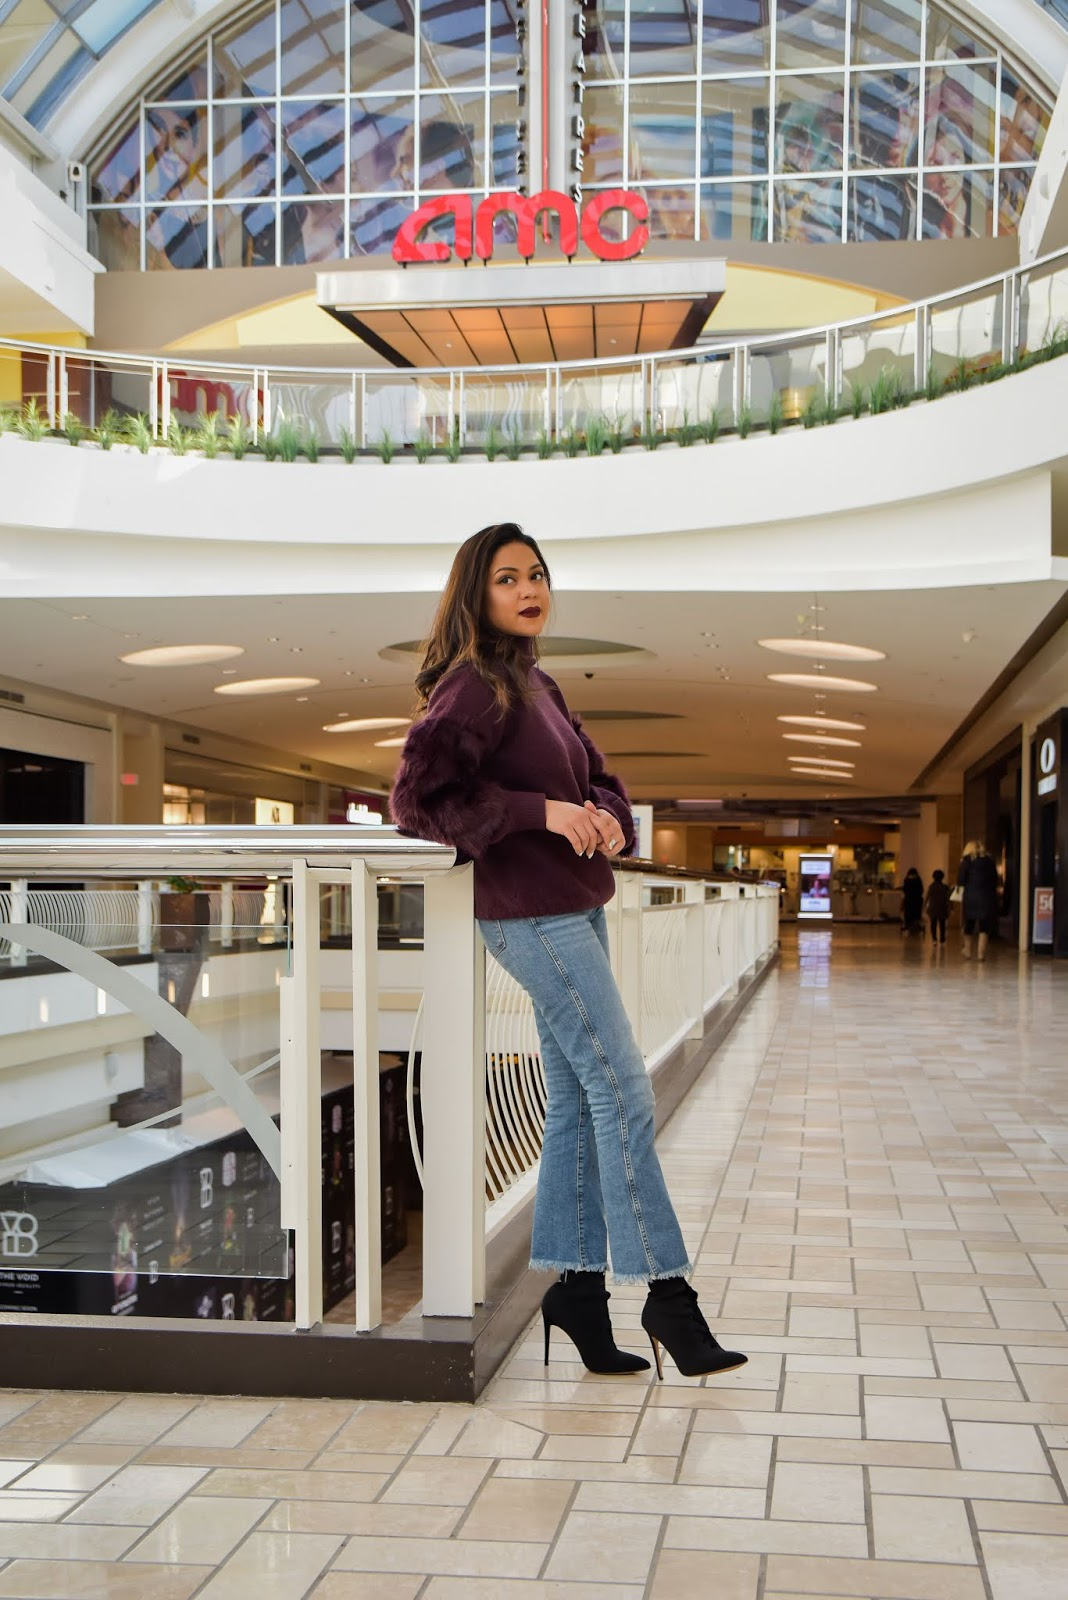 brandbox, tysons corner, saumya in the city, DC blogger, fashion, style, french connection sweatr, fur sleeve sweater, mall style, shopping, saumya shiohare, myriad musings